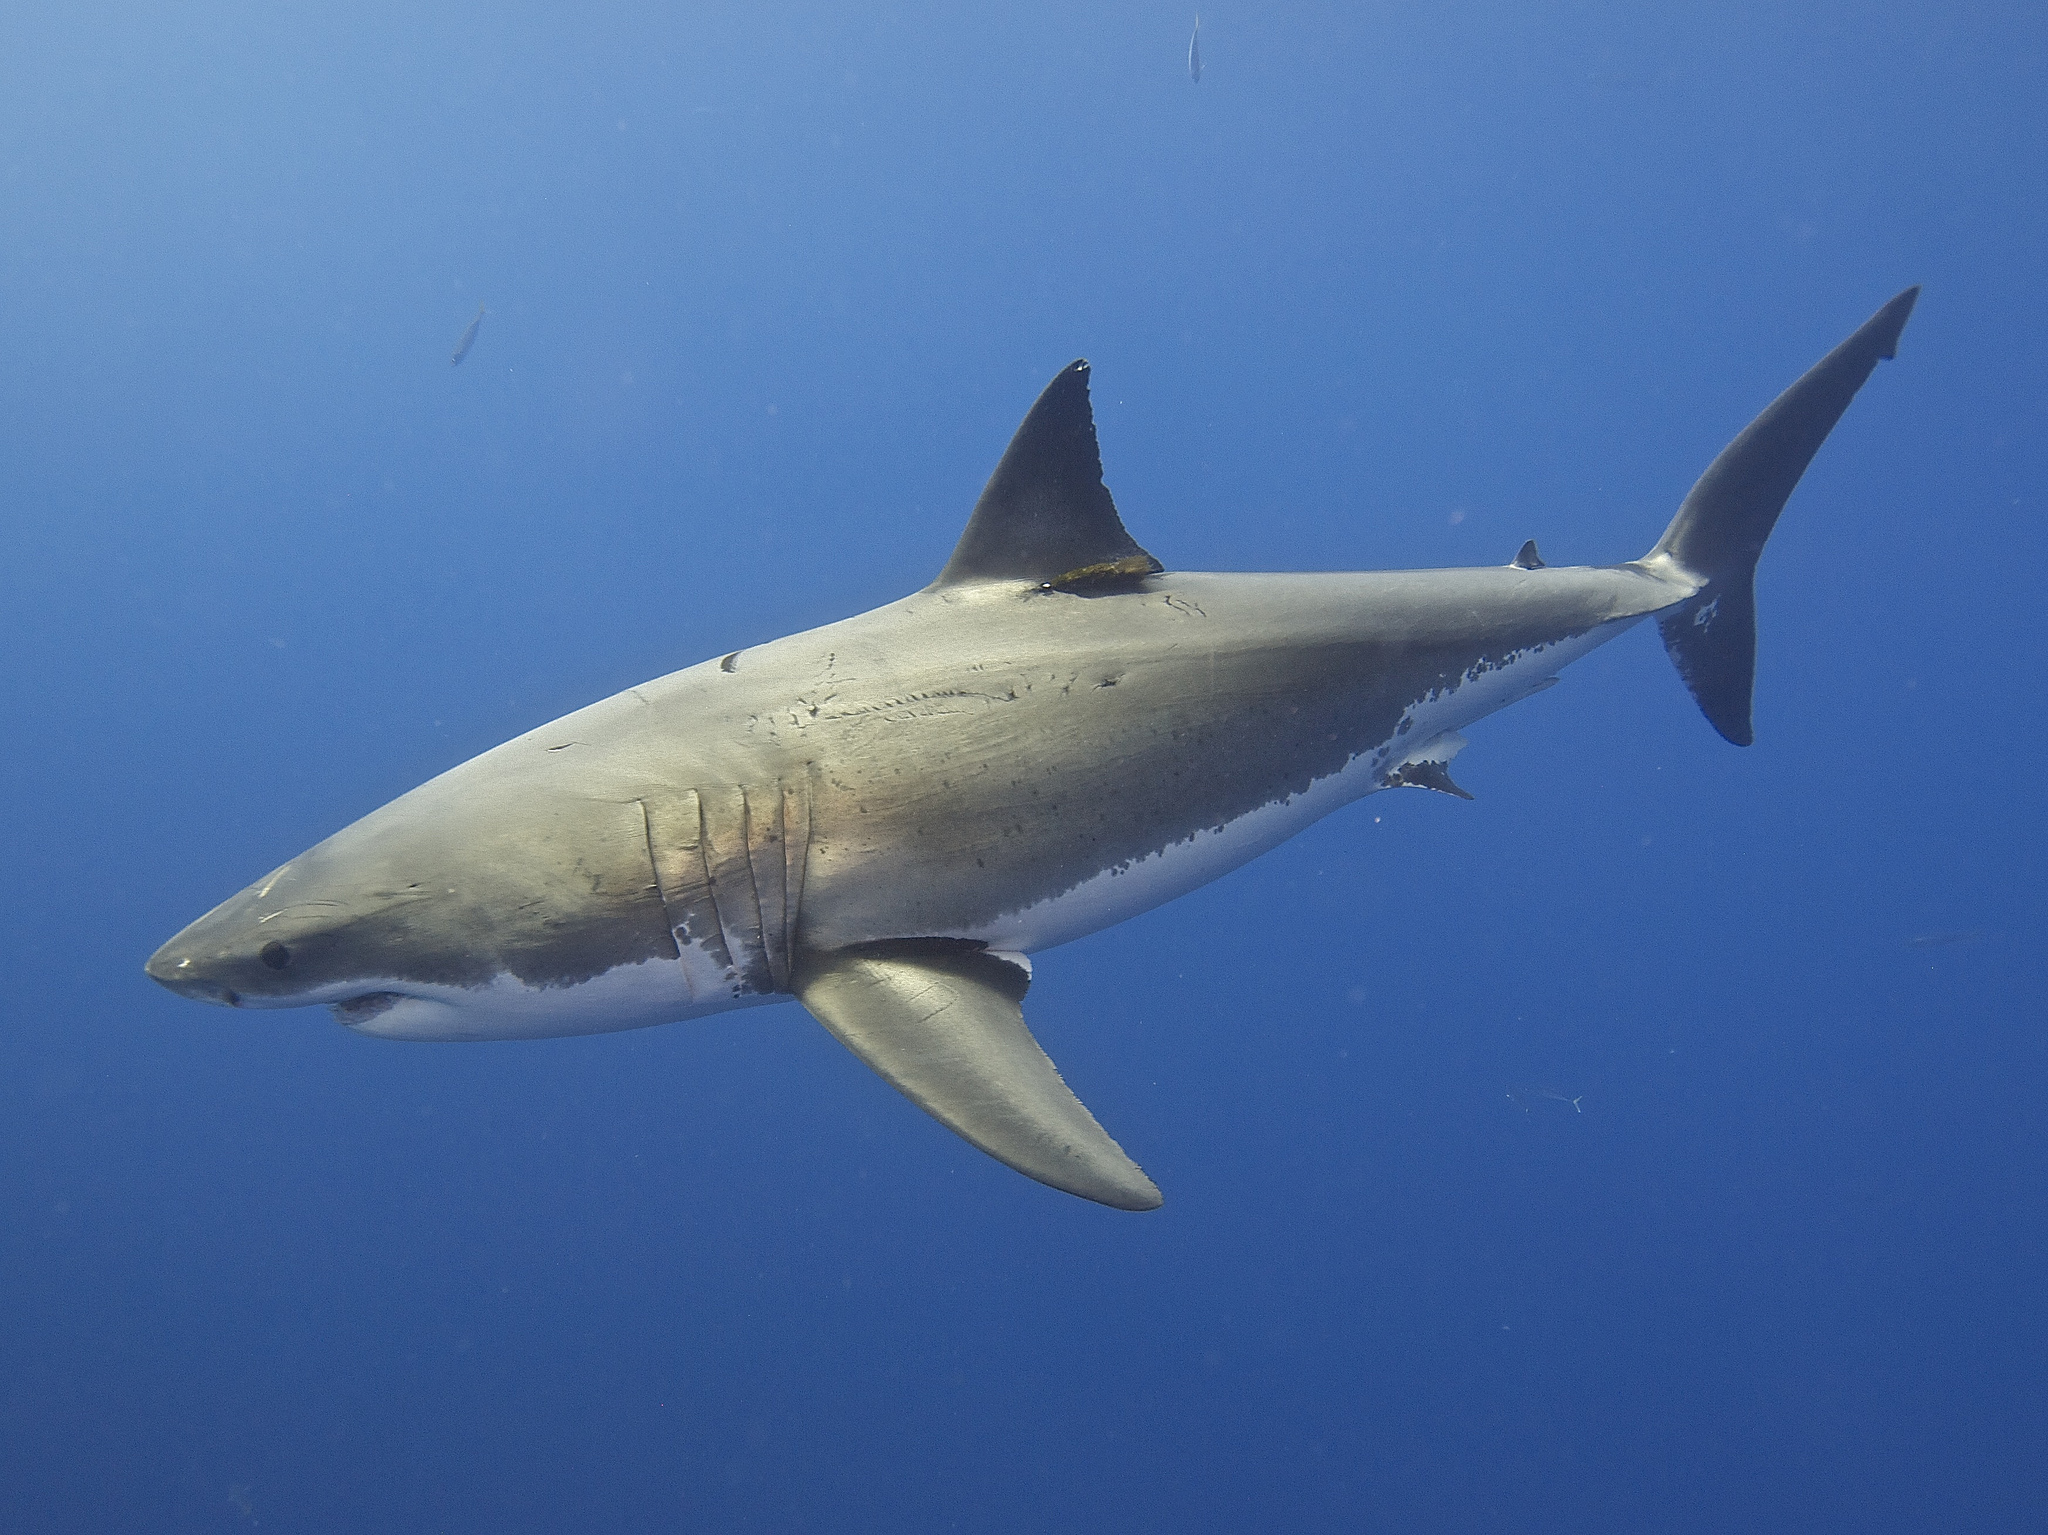 Great white sharks have huge home ranges, moving vast distances across the ocean. Credit  Elias Levy  (CC BY 2.0)